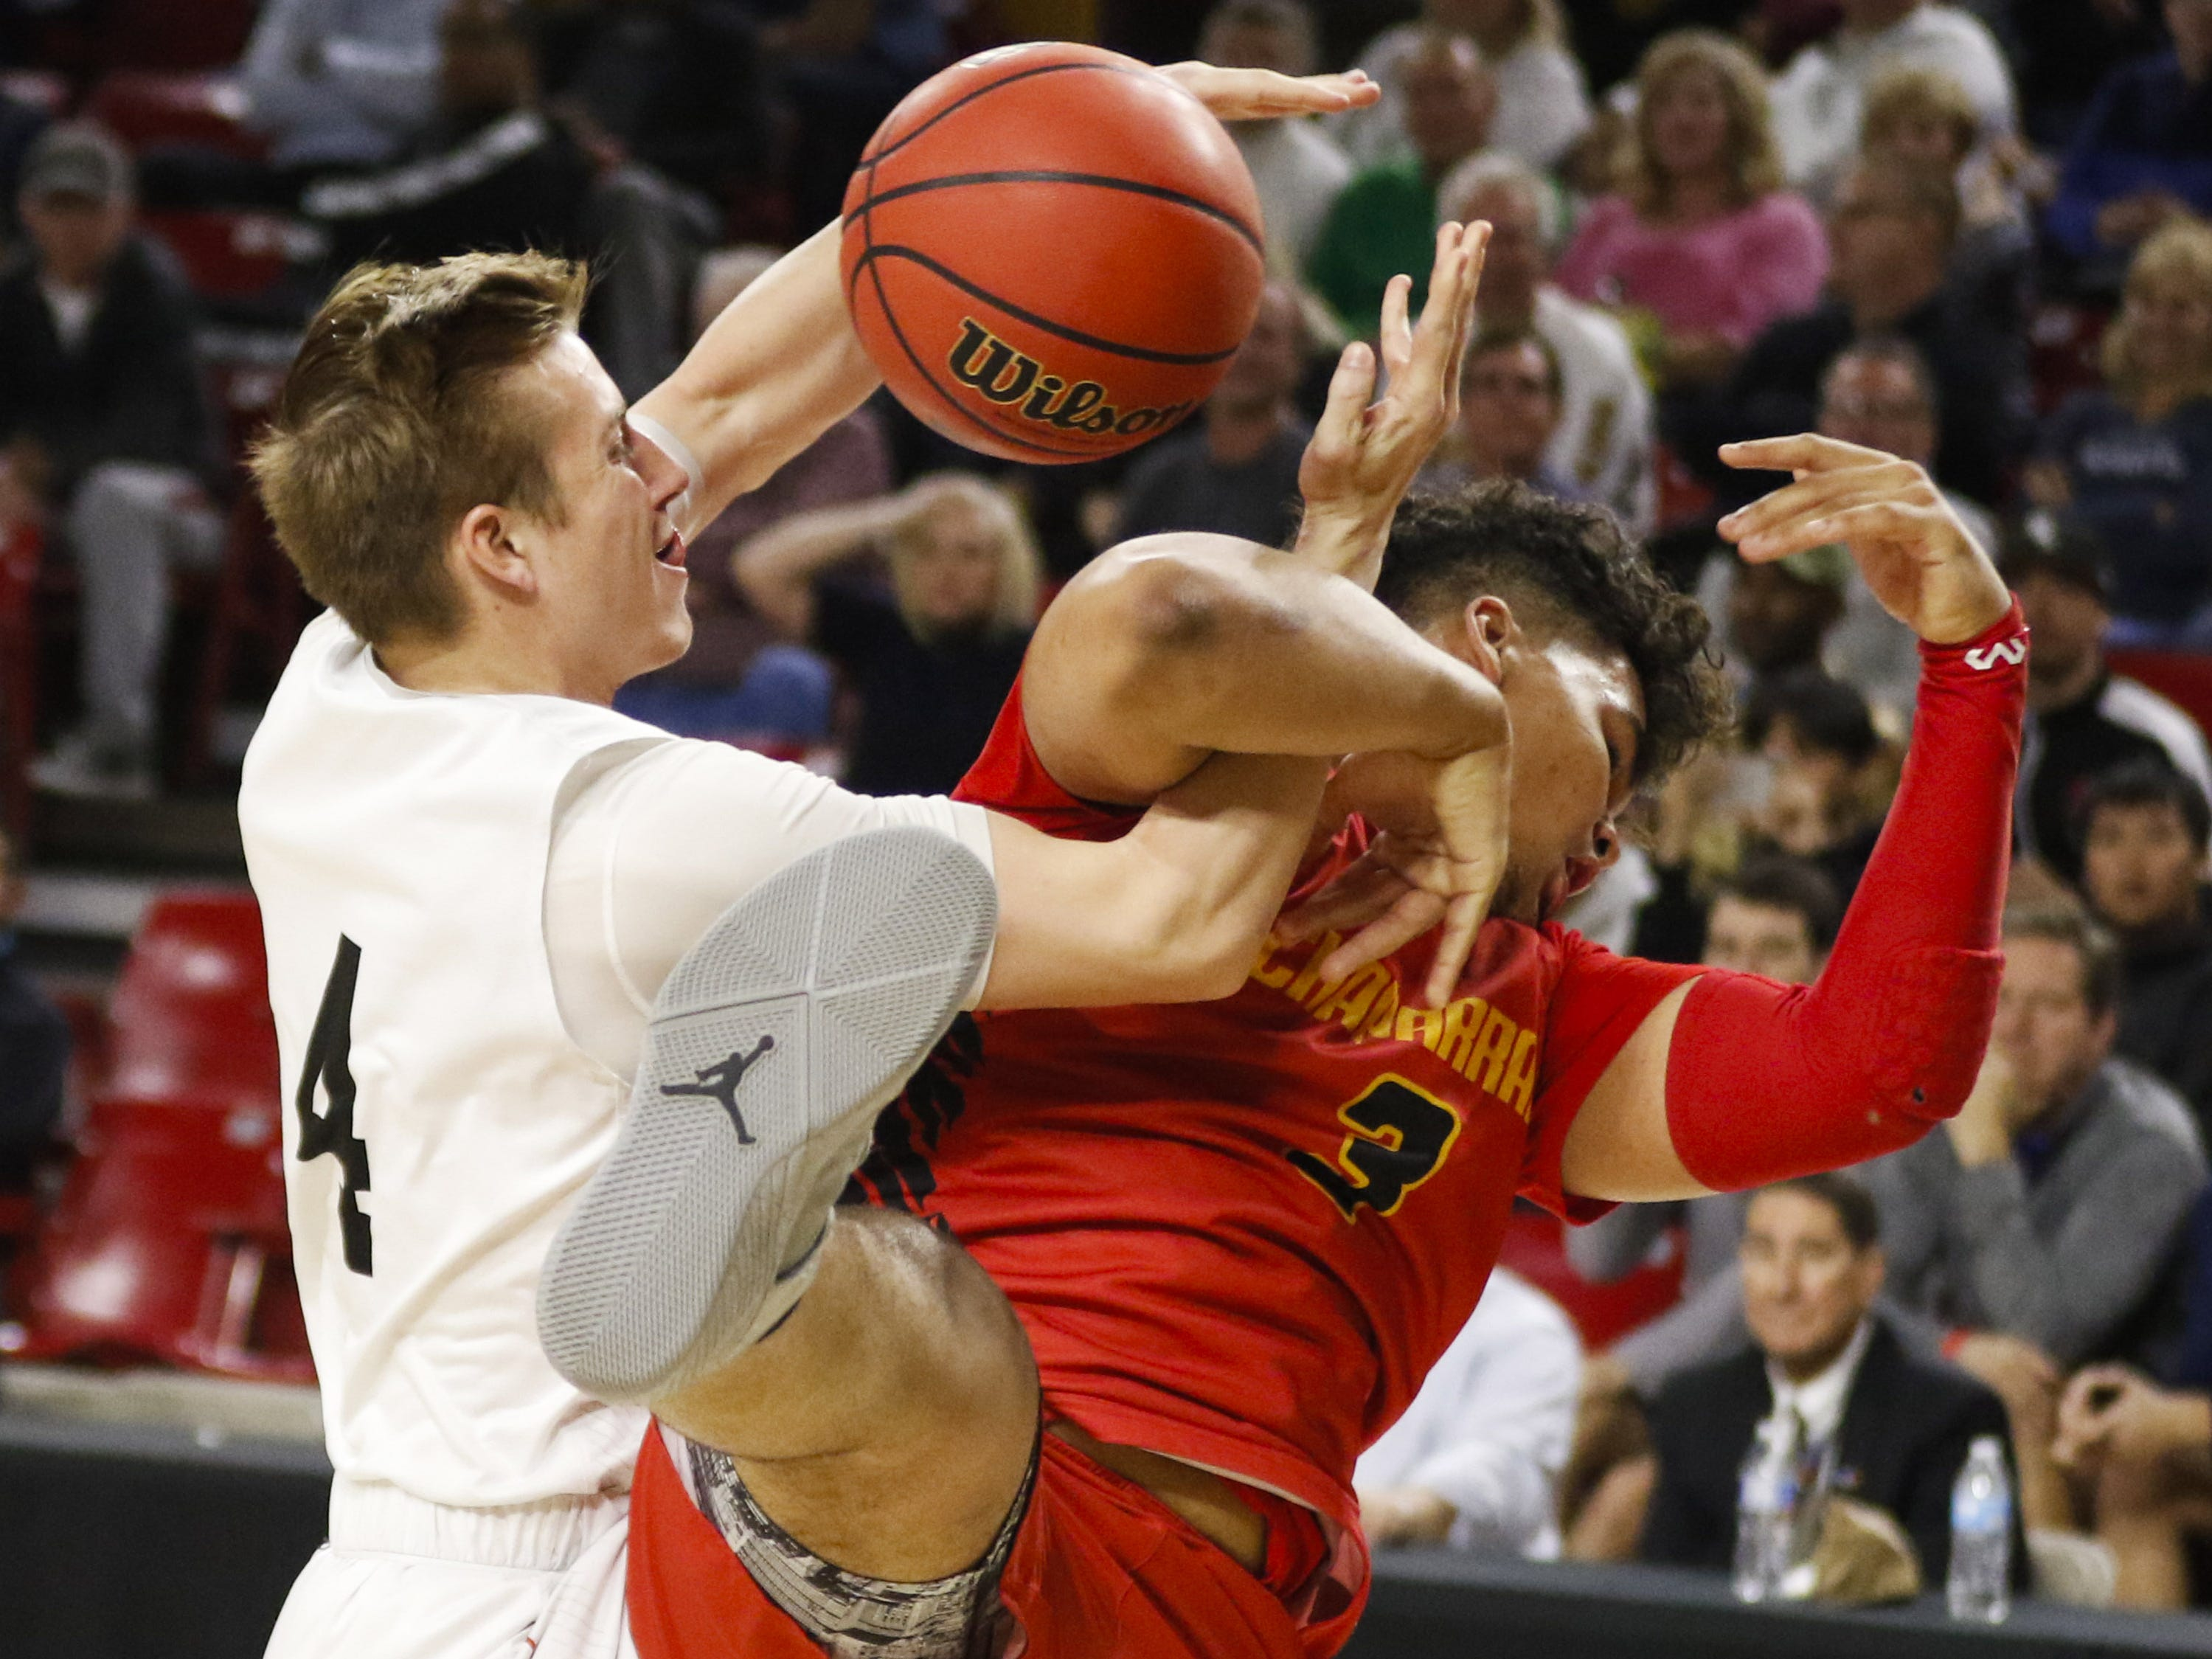 Pinnacle's Colby Howard (34) battles for the ball with Chaparral's Blaise Threatt (3) during the 6A Boys State Championship at Wells Fargo Arena in Tempe Tuesday, Feb 26, 2019.